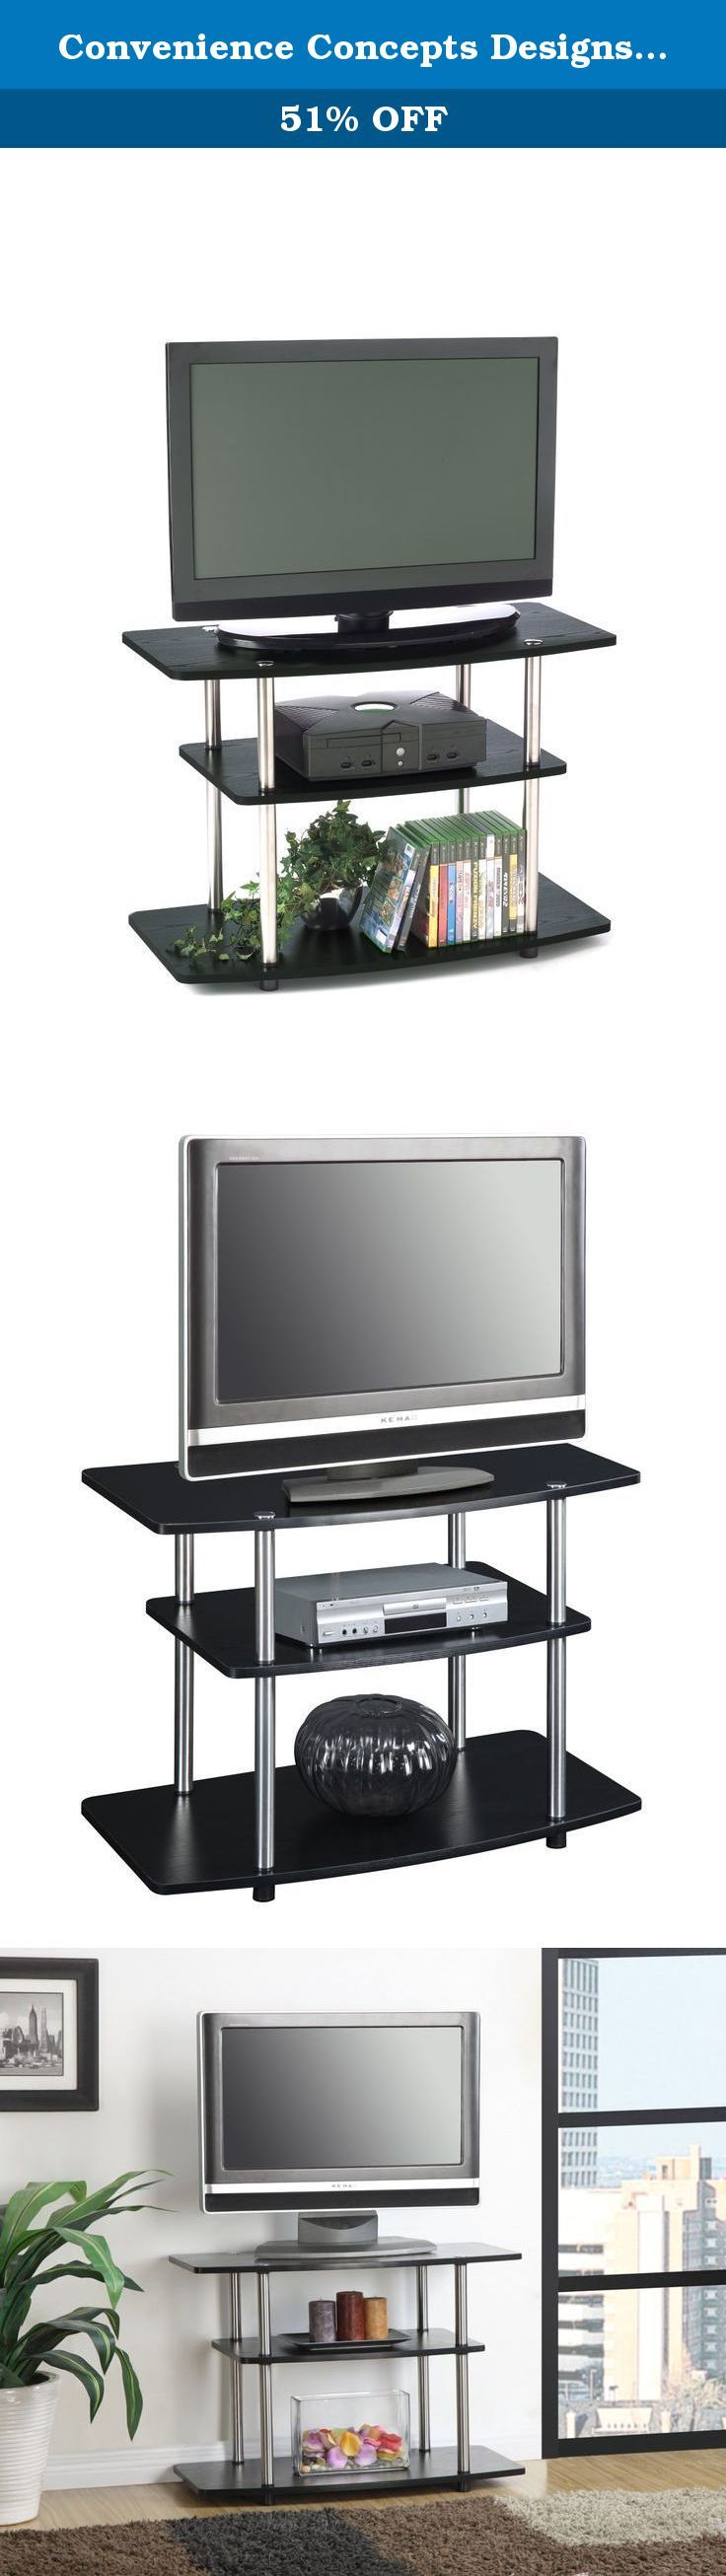 Convenience Concepts Designs2Go 3-Tier TV Stand for Flat Panel Television up to 32-Inch or 80-Pound, Black. The modern design of the TV Stand will complete the look of any contemporary home. The 131020 TV Stand is perfect for all audio and video components. Convenience Concepts brings you exciting and affordable furniture. Combining exciting designs with economical overseas manufacturing to bring you the finest in sensible contemporary furniture. Focusing on R-T-A Entertainment, TV…